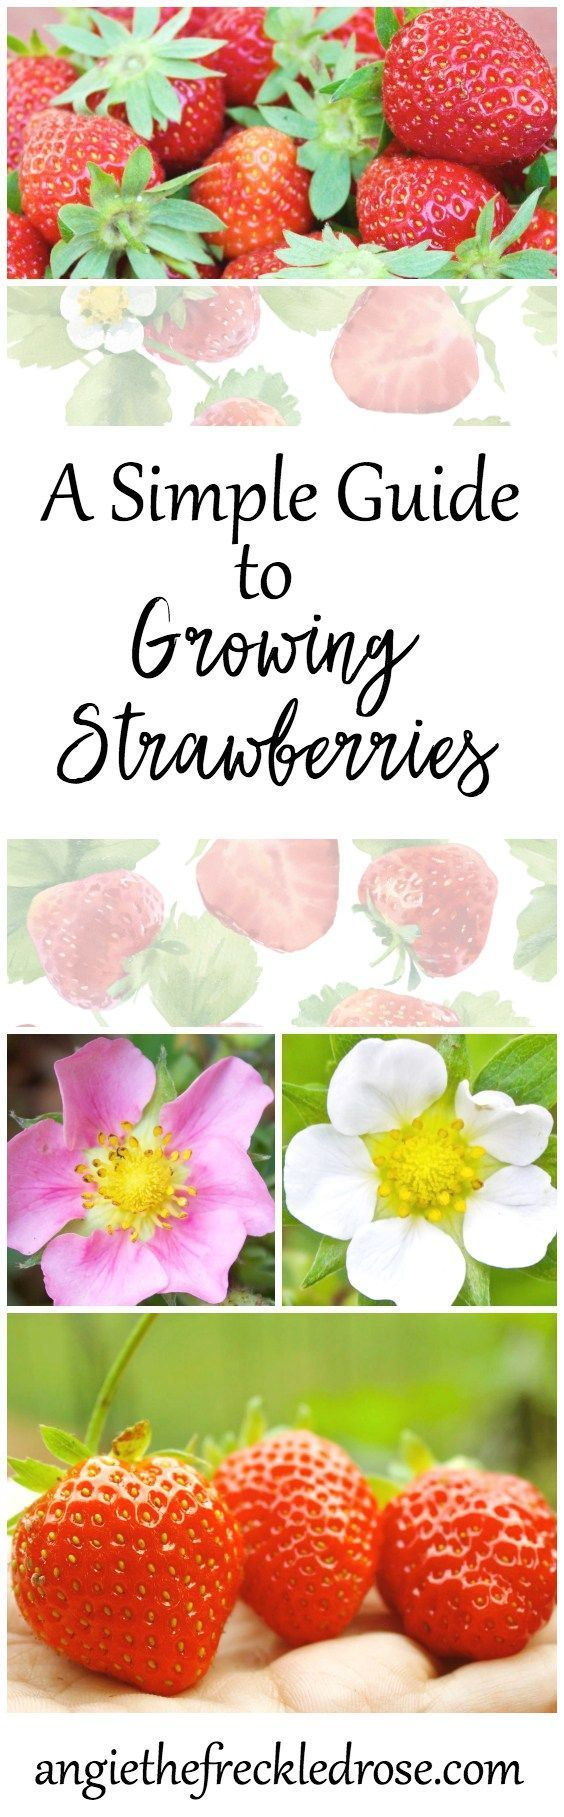 When I first started gardening, I couldn't wait to try growing strawberries! These red berries are jam-packed full of vitamins, fiber and antioxidants. I can never resist a bite of a plump, juicy and sweet strawberry. I remember visiting my local garden nursery and noticing these bright red hanging baskets. As I got closer, I noticed they were filled with flowering strawberry plants. What? You can grow them like this? In fact, you can indeed grow berries in hanging baskets.